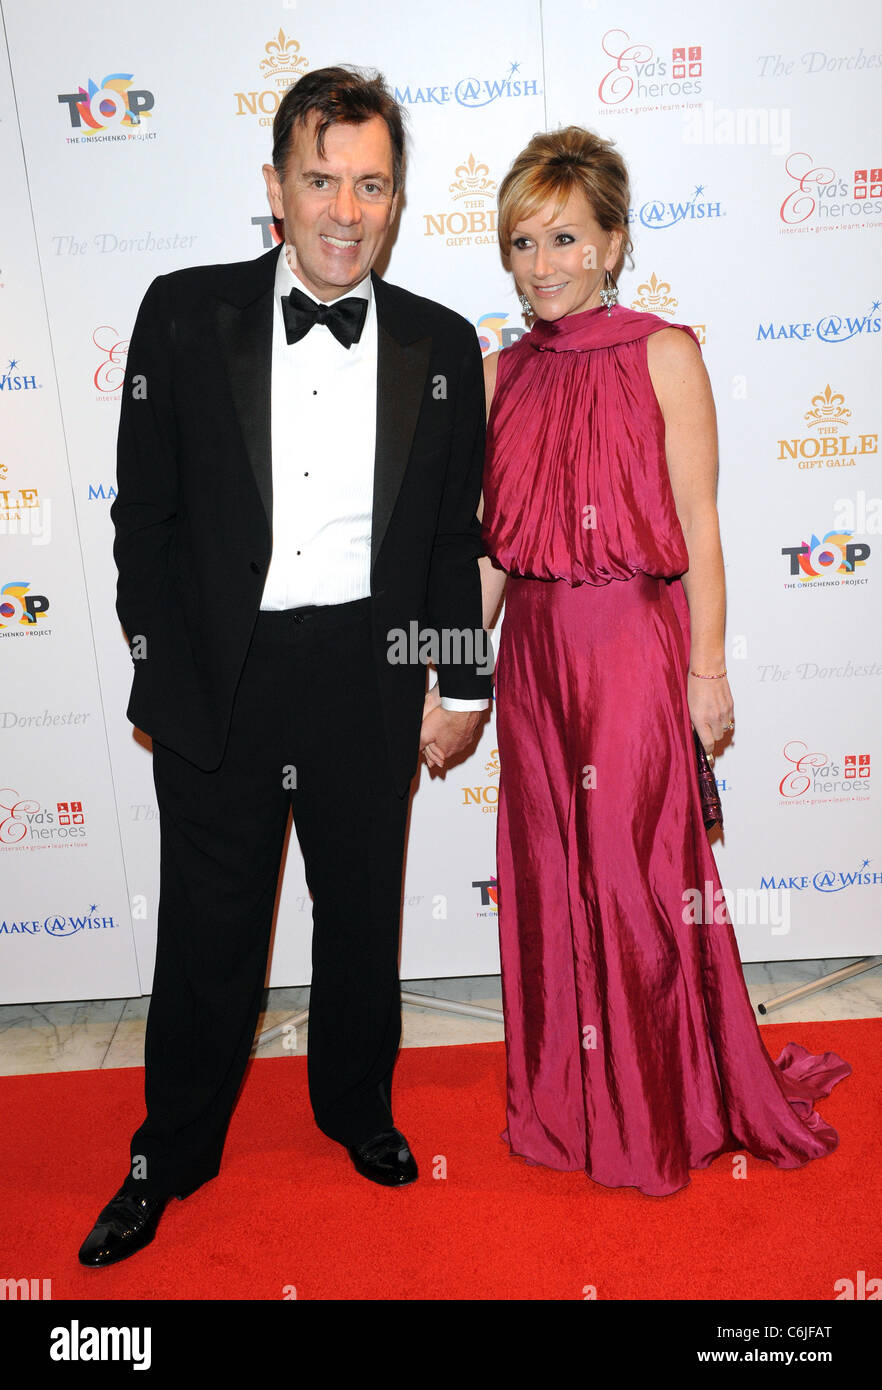 Duncan Bannatyne The Noble Gift Gala held at The Dorchester - Arrivals London, England - 13.03.10 - Stock Image